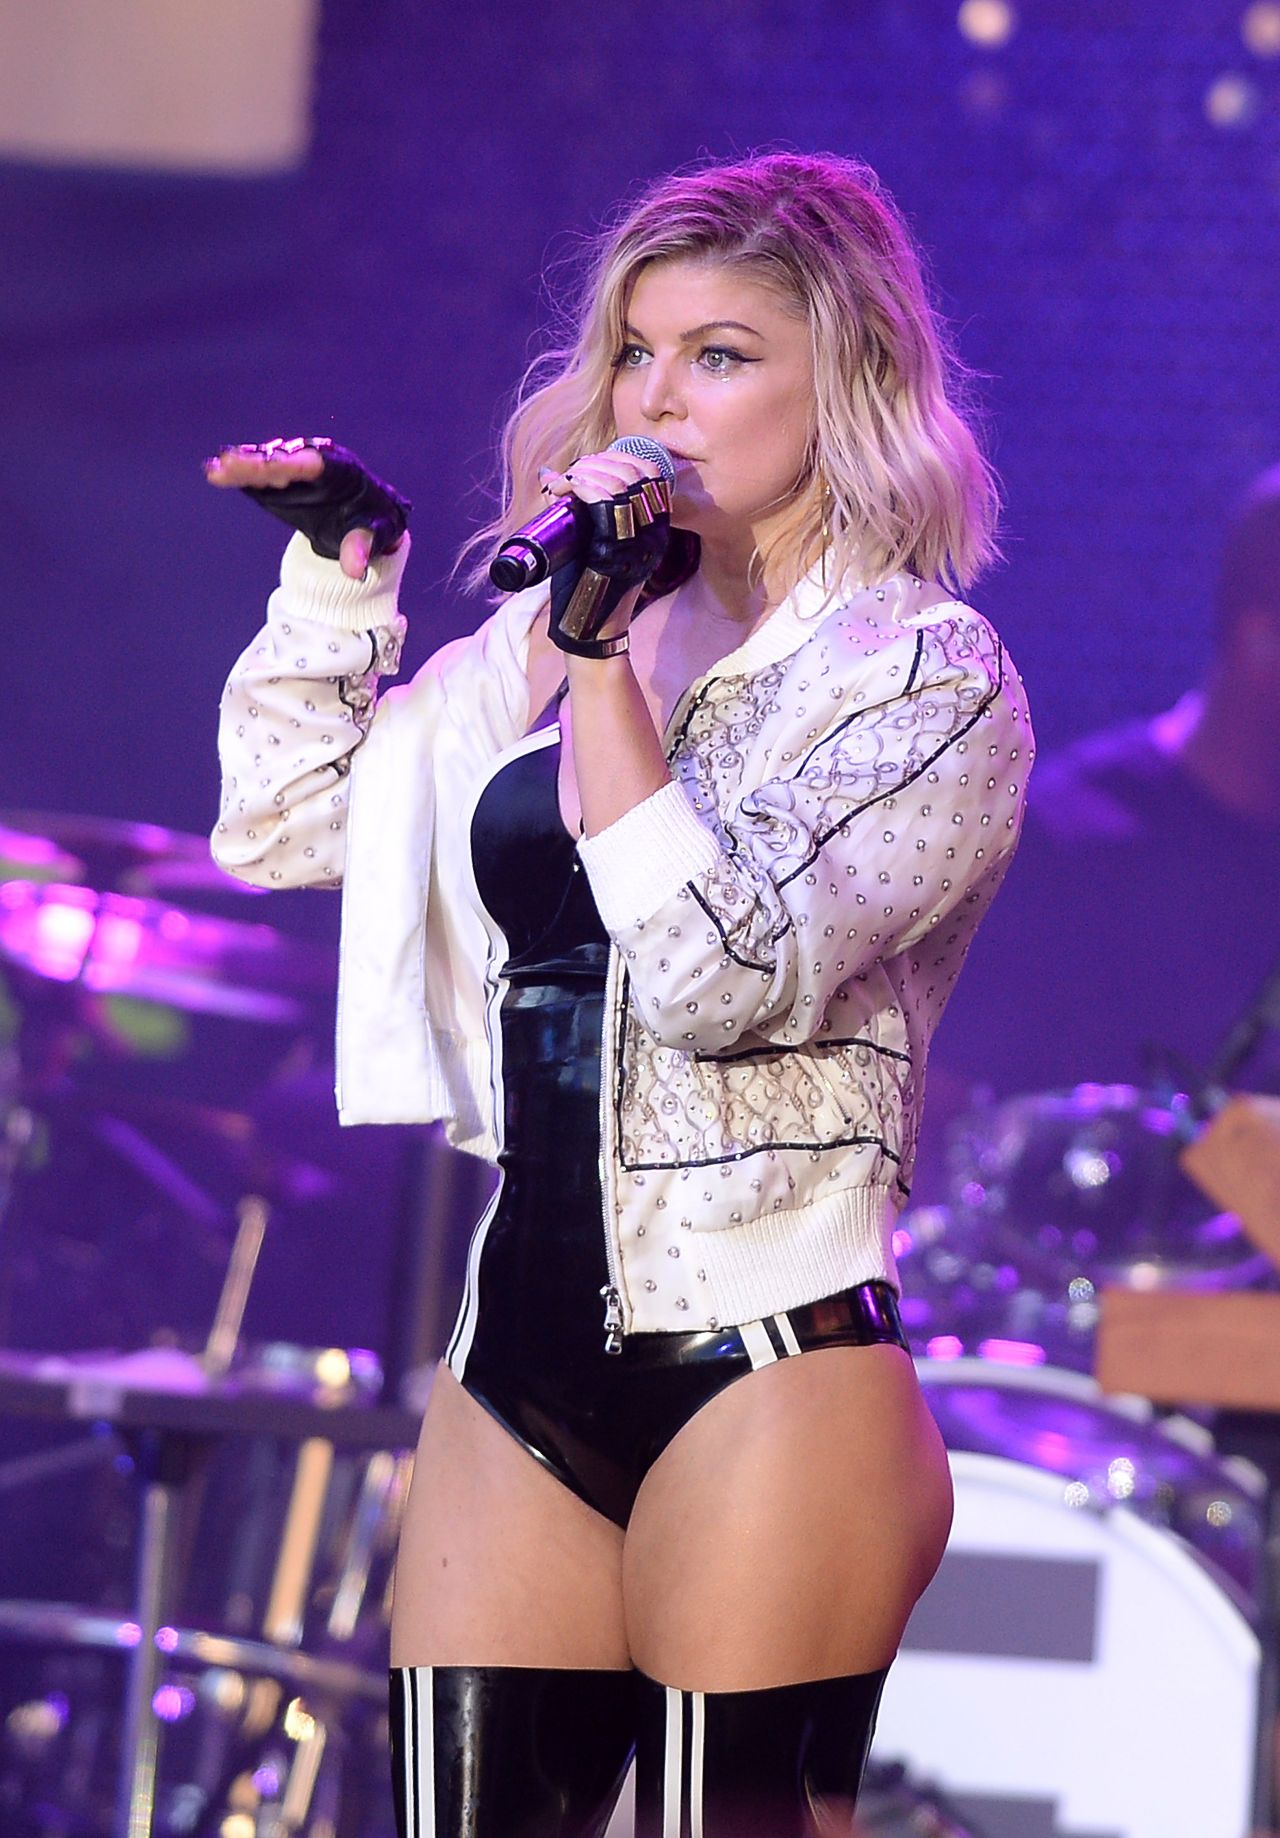 Stacy Fergie Ferguson Performing at Pandora Summer Crush in Los Angeles August 2016